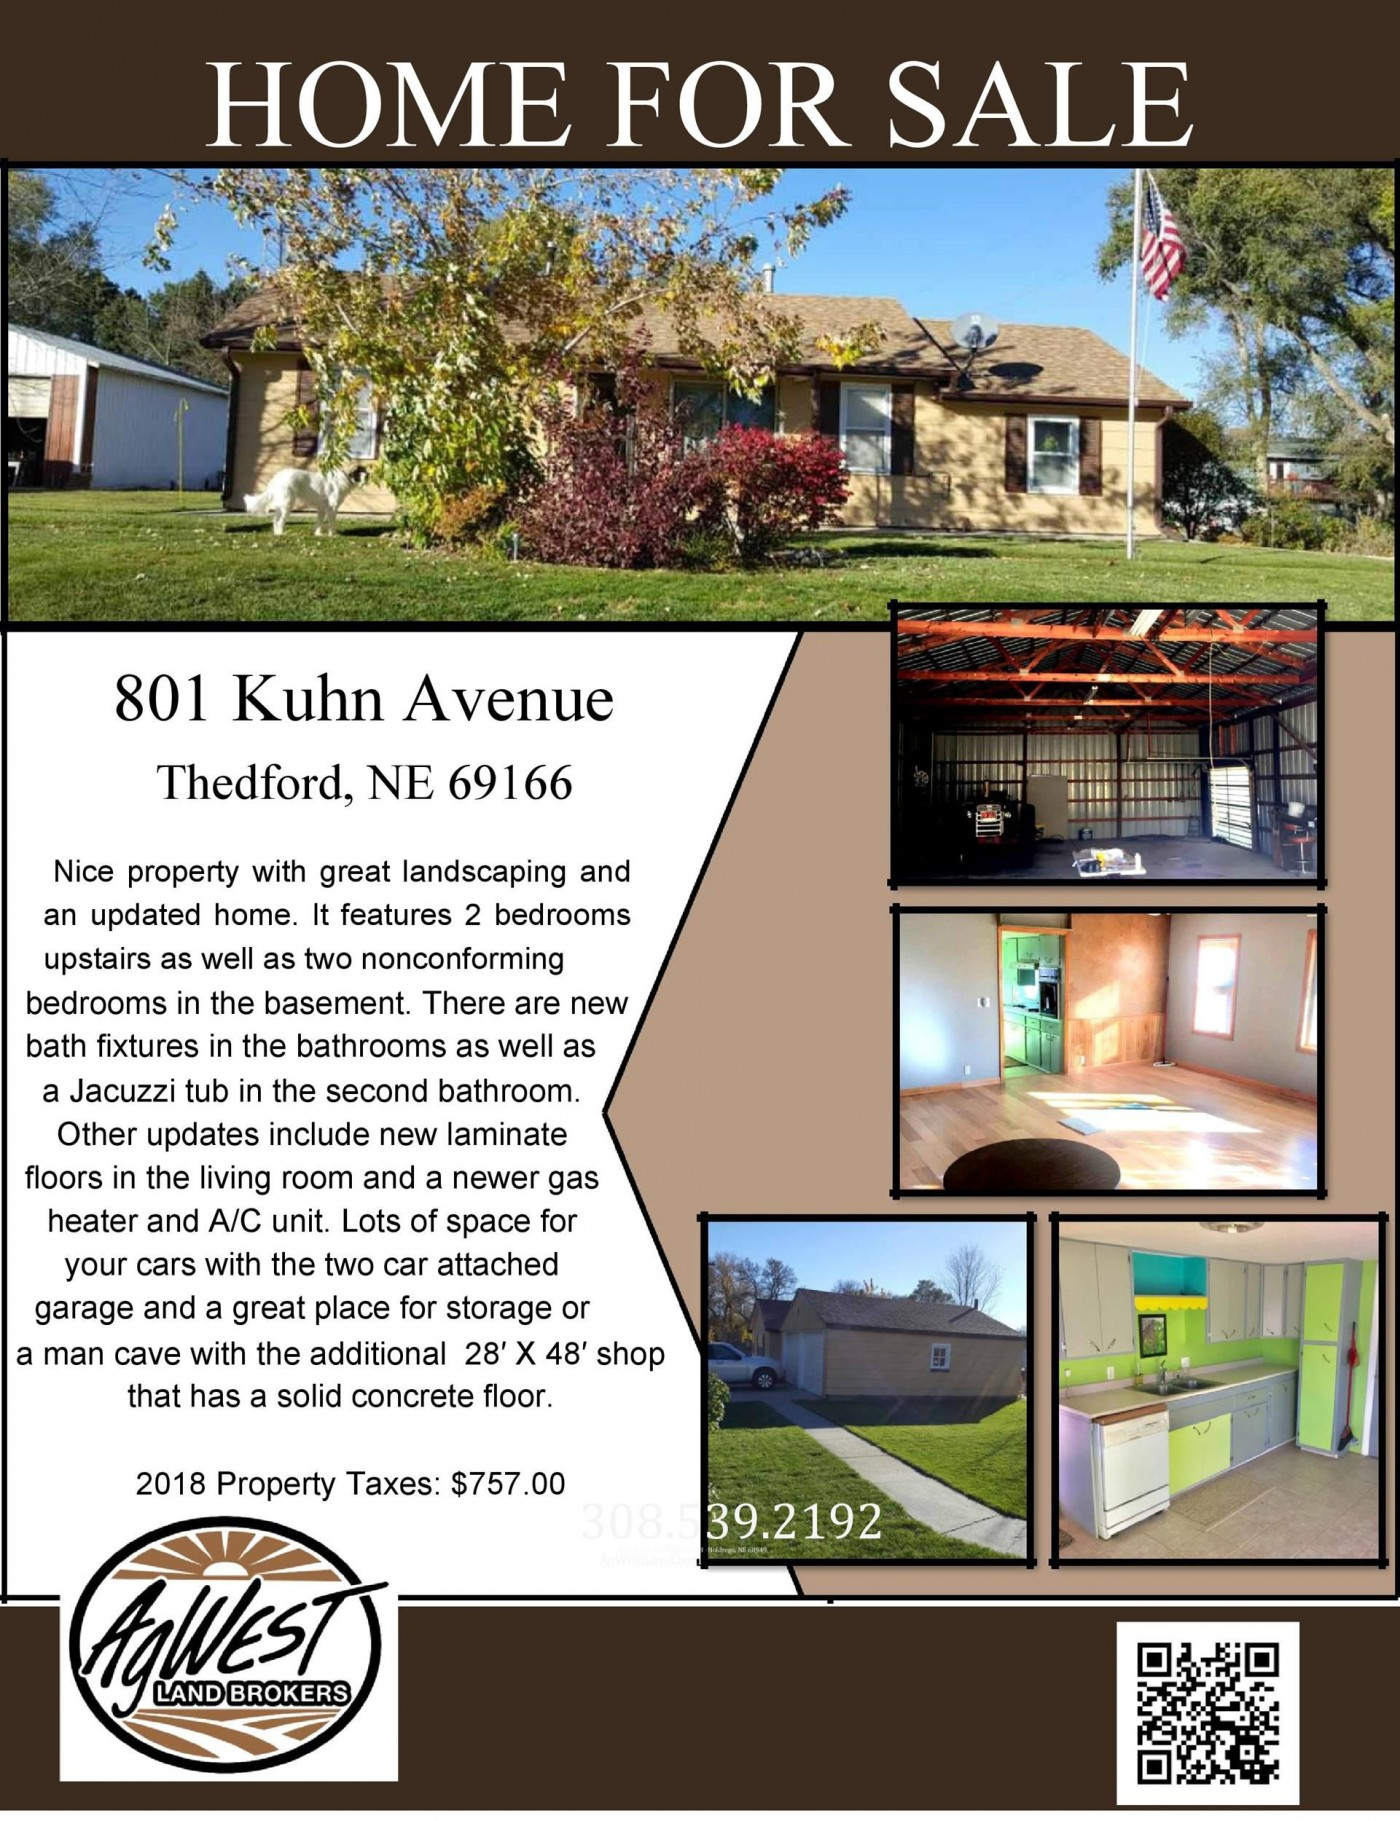 004 Striking House For Sale Flyer Template Sample  Free Real Estate Example By Owner1400